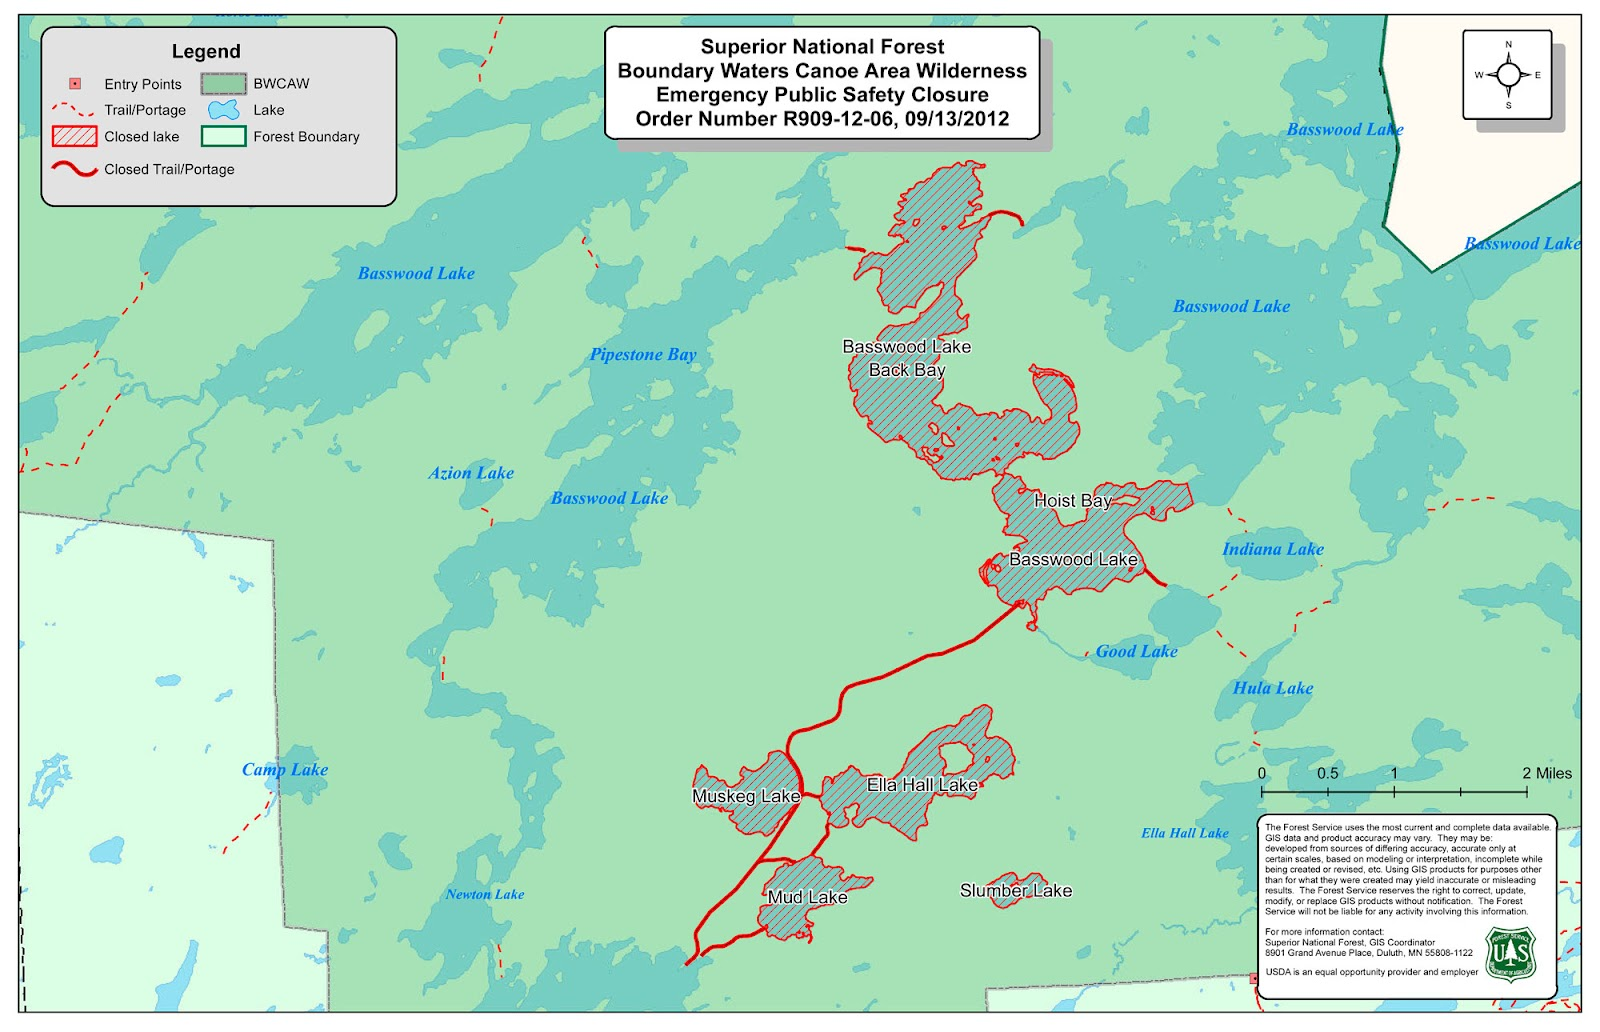 Piragis Northwoods Company Boundary Waters Blog Boundary Waters - Bwca entry point map